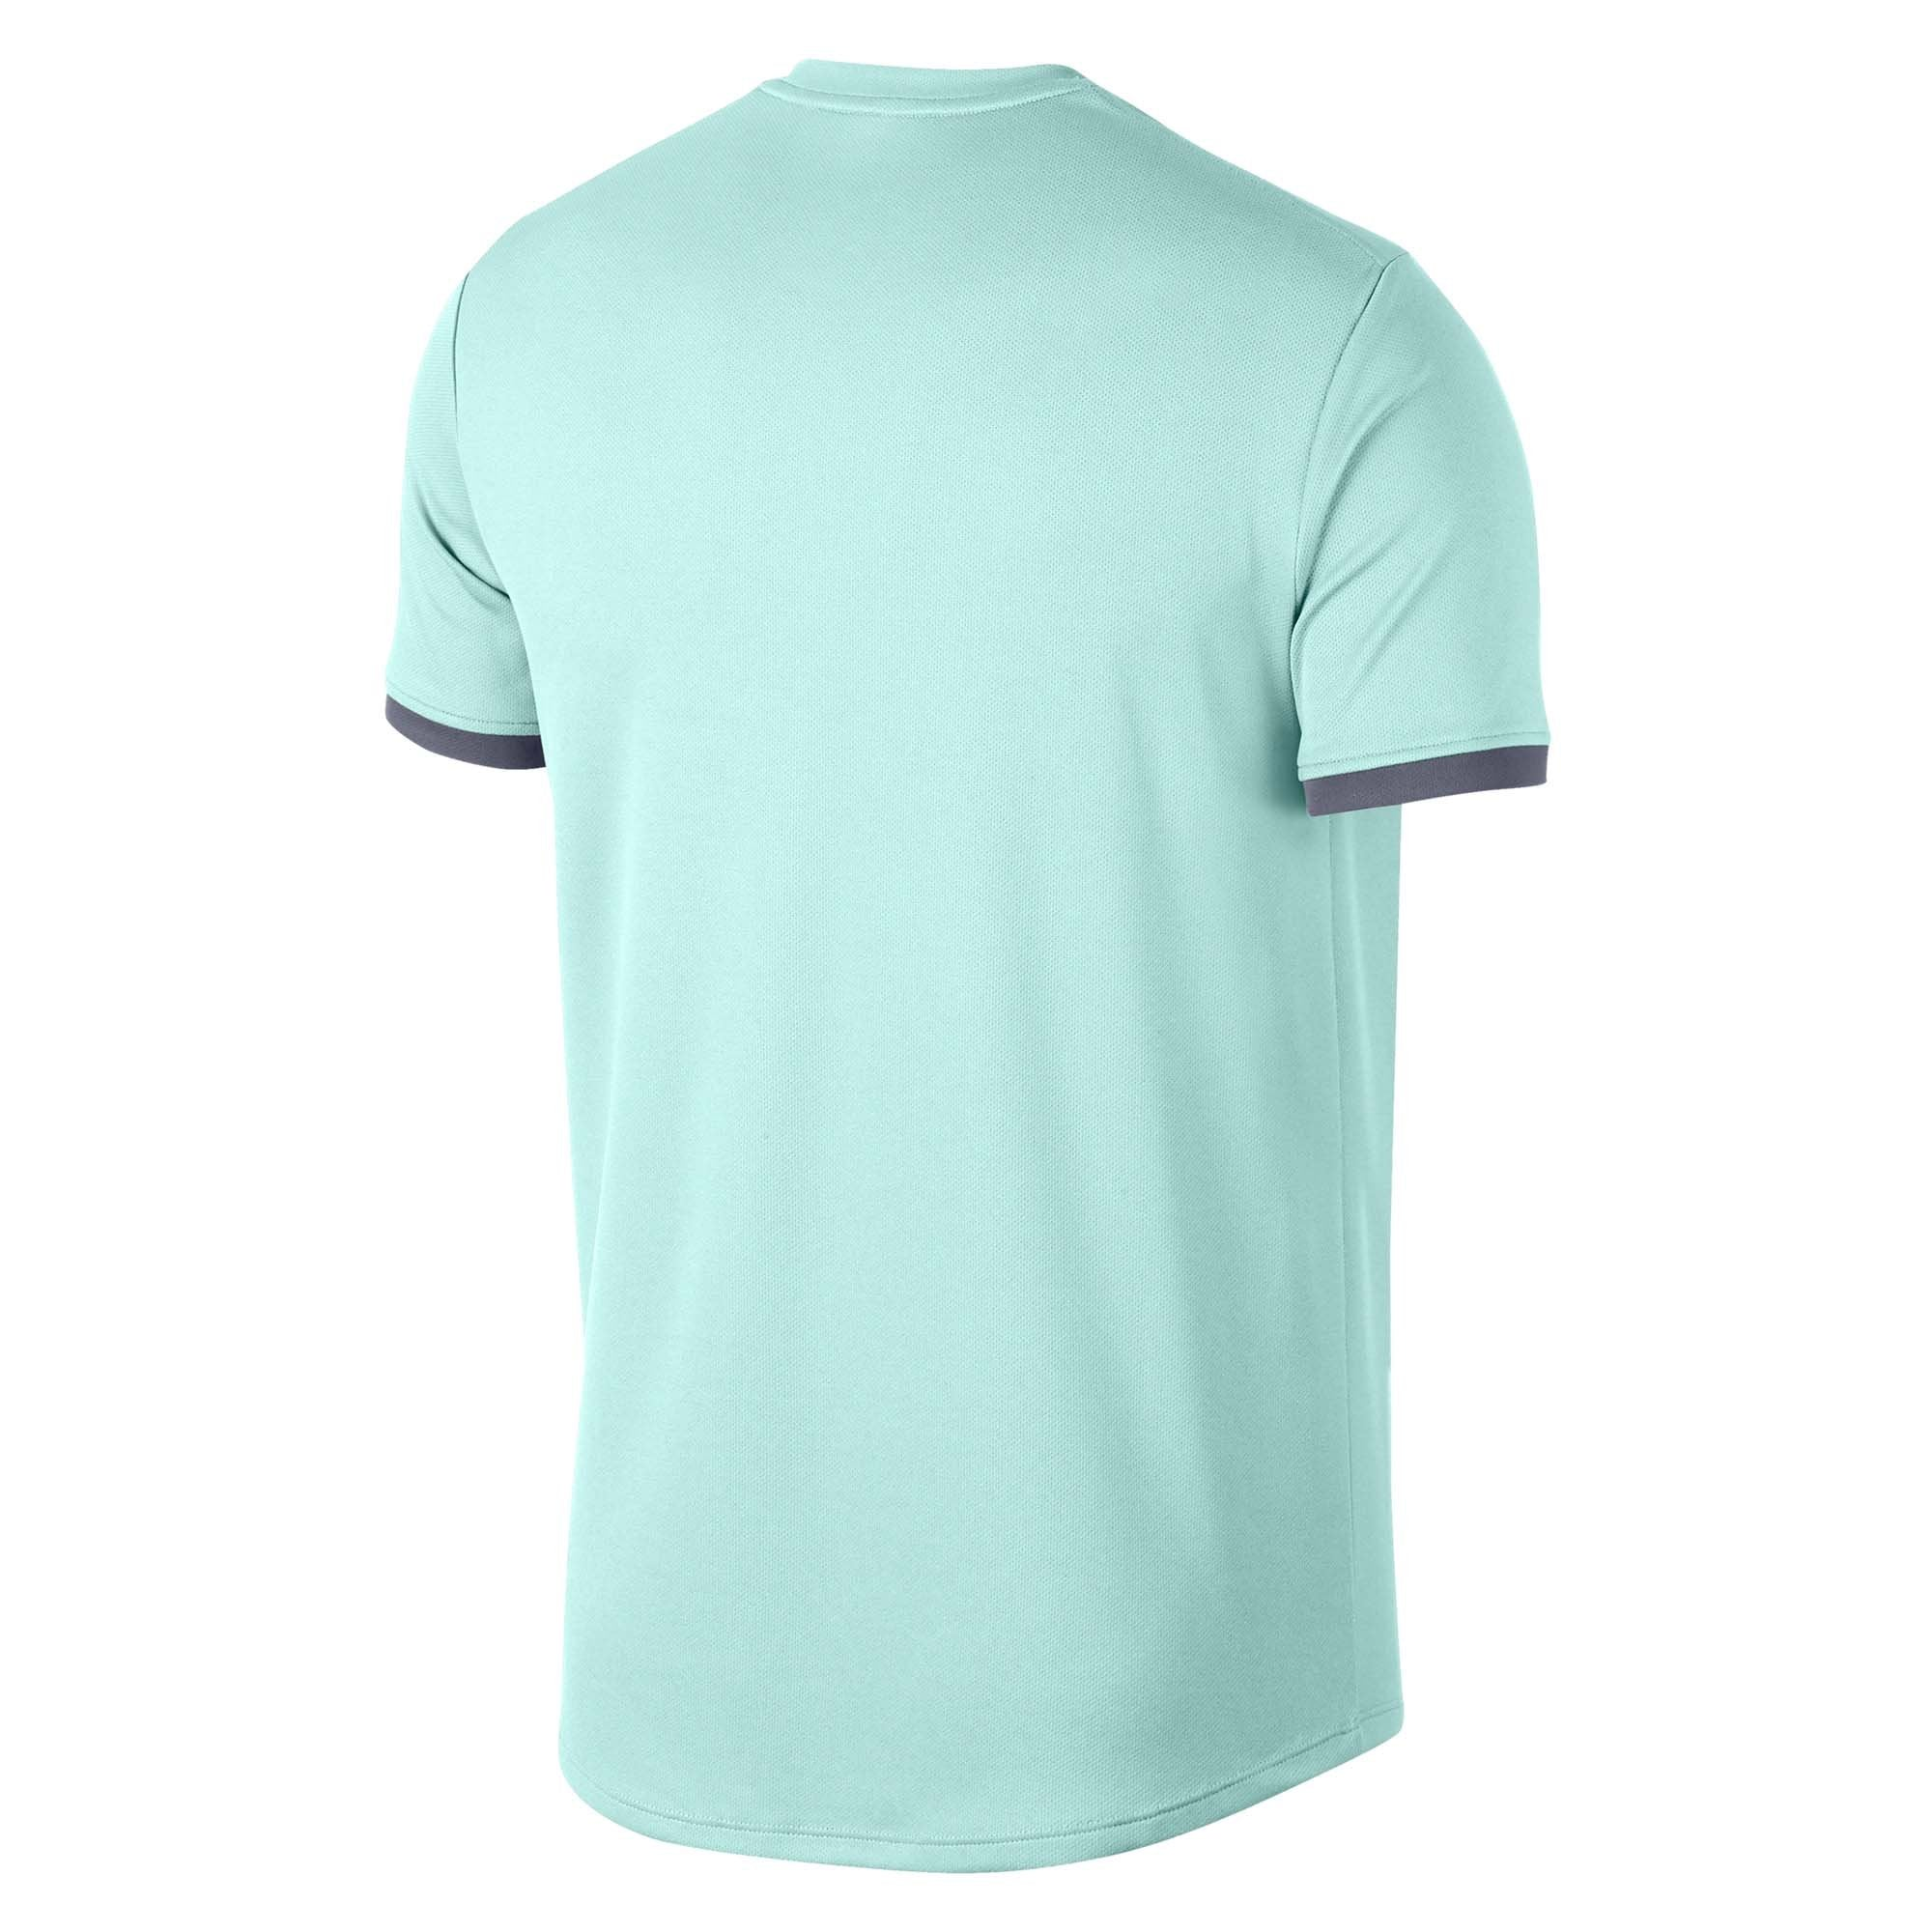 83a74cc351ae Buy Nike Men Court Dry-Fit Shortsleeve Top Online in Singapore ...